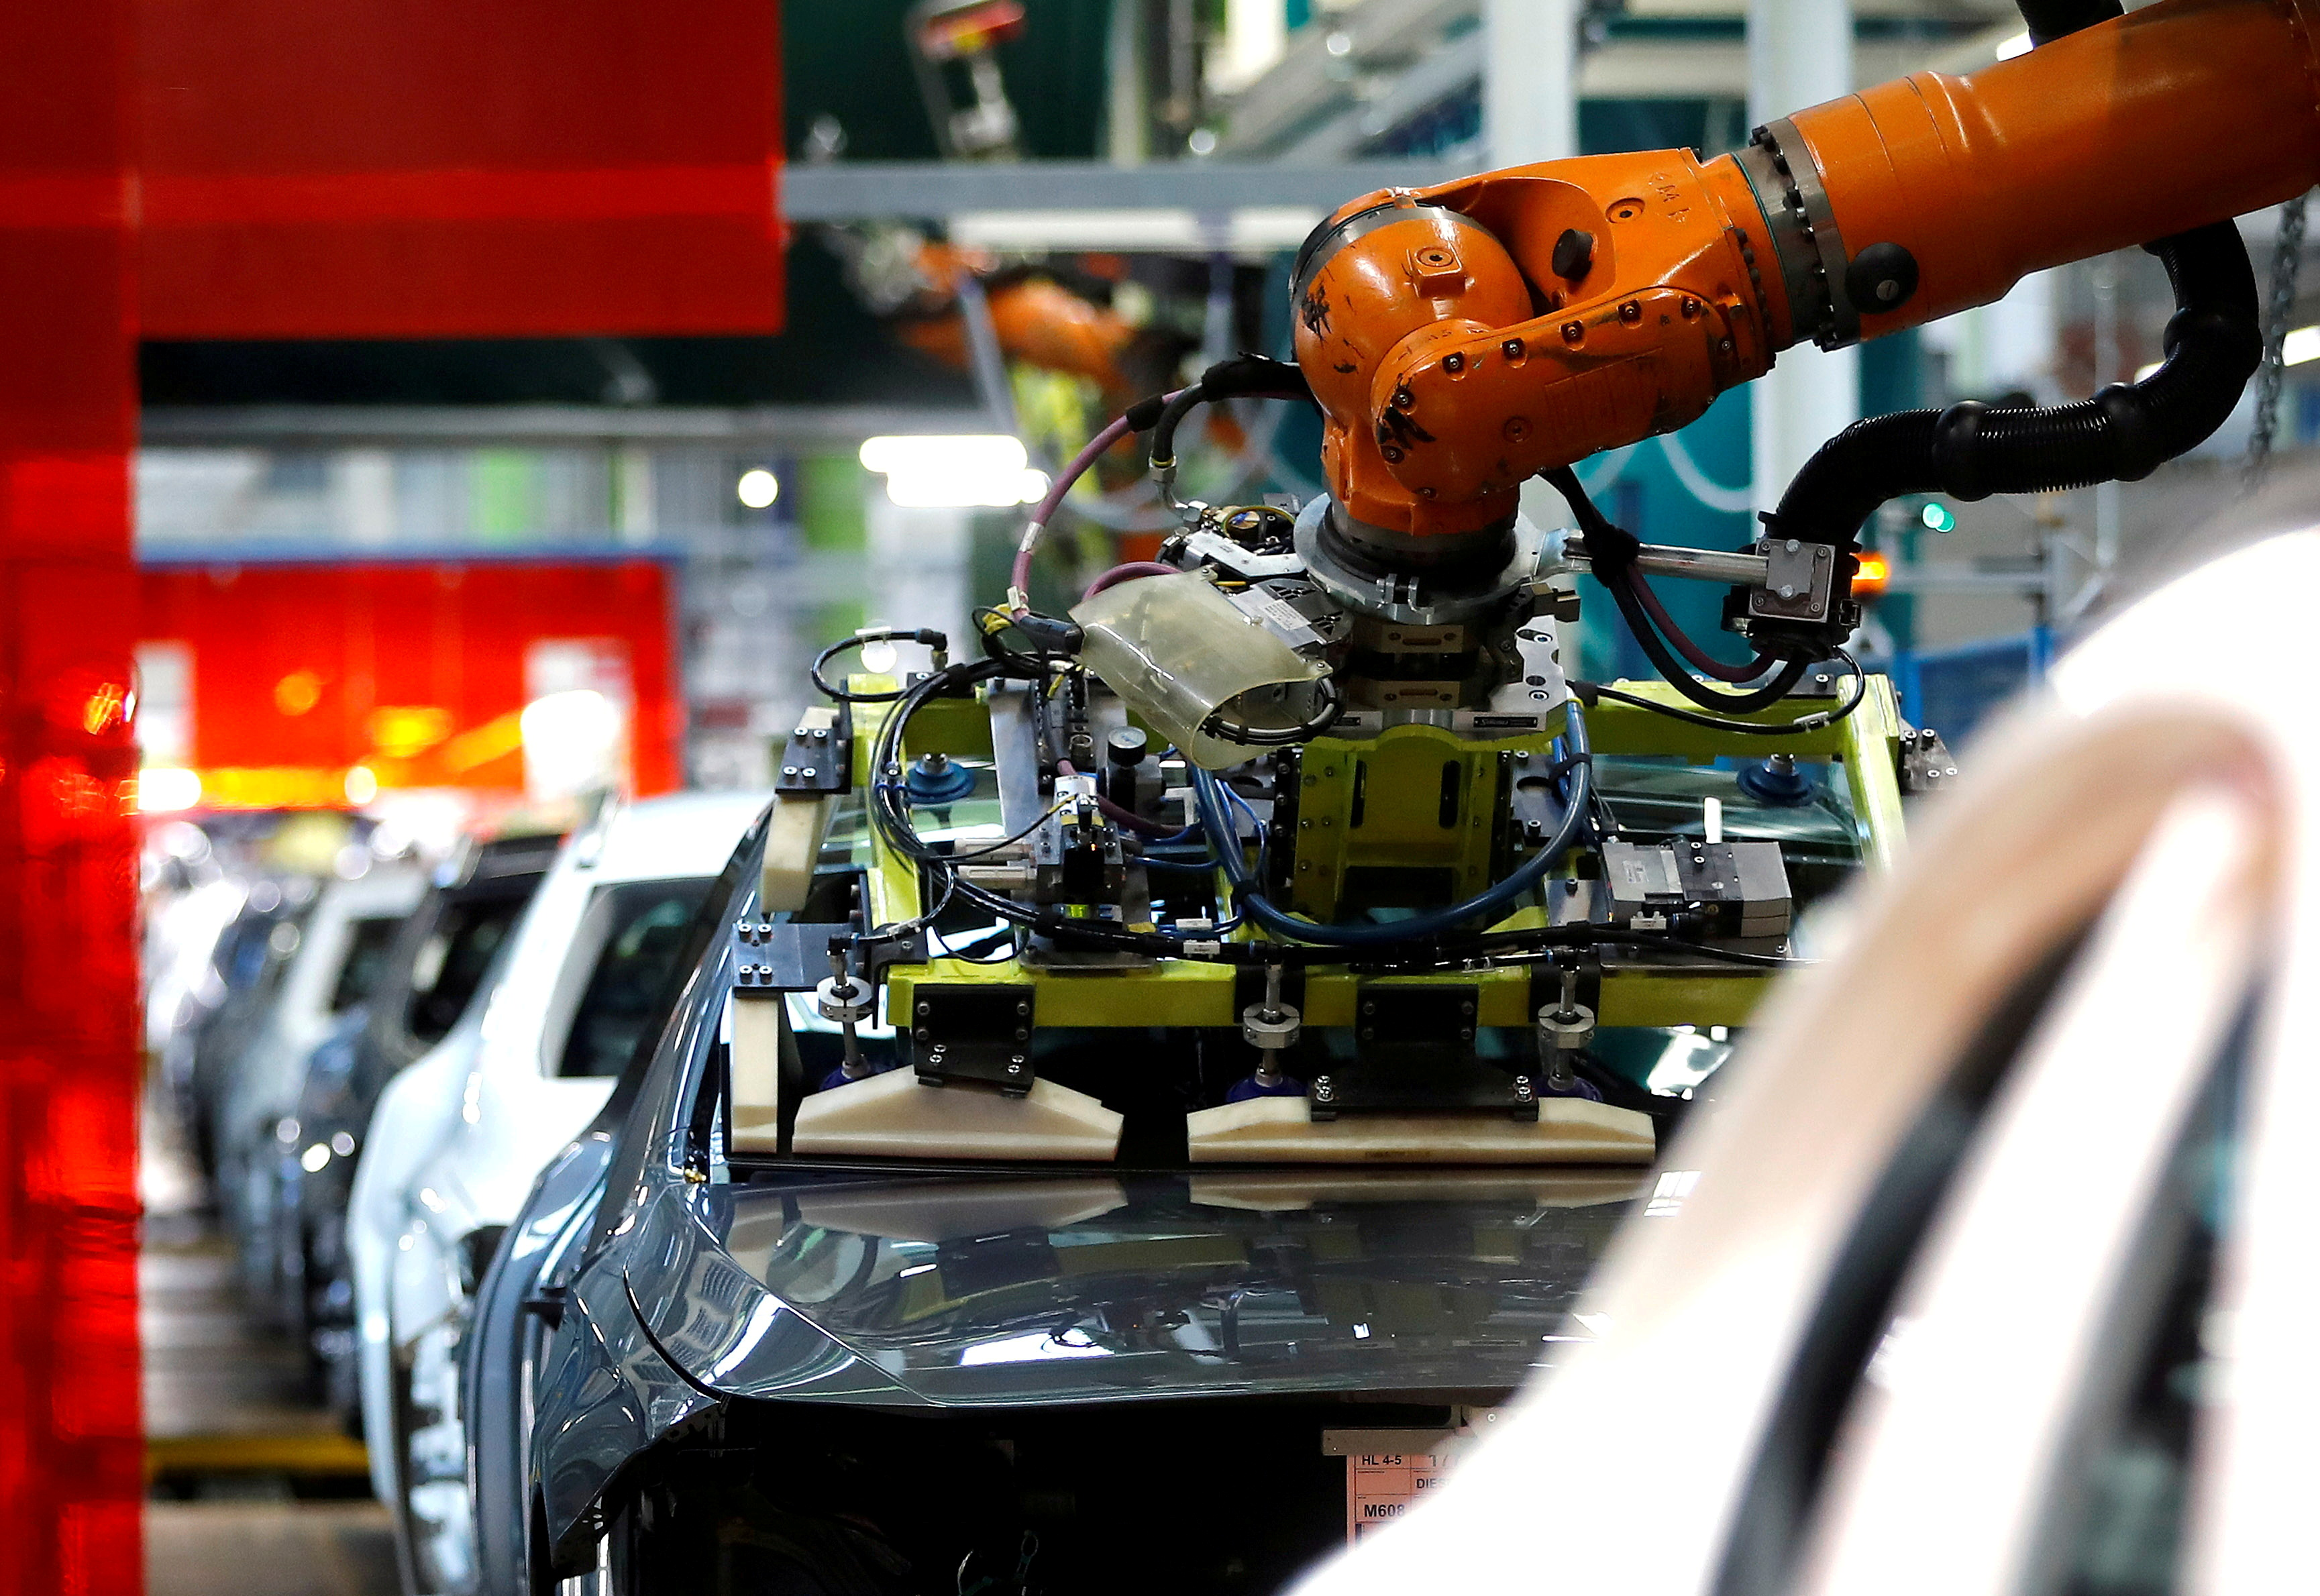 A robot adjusts a windscreen in a fully automated process at the Daimler factory in Rastatt, Germany, February 4, 2019. REUTERS/Kai Pfaffenbach/File Photo/File Photo